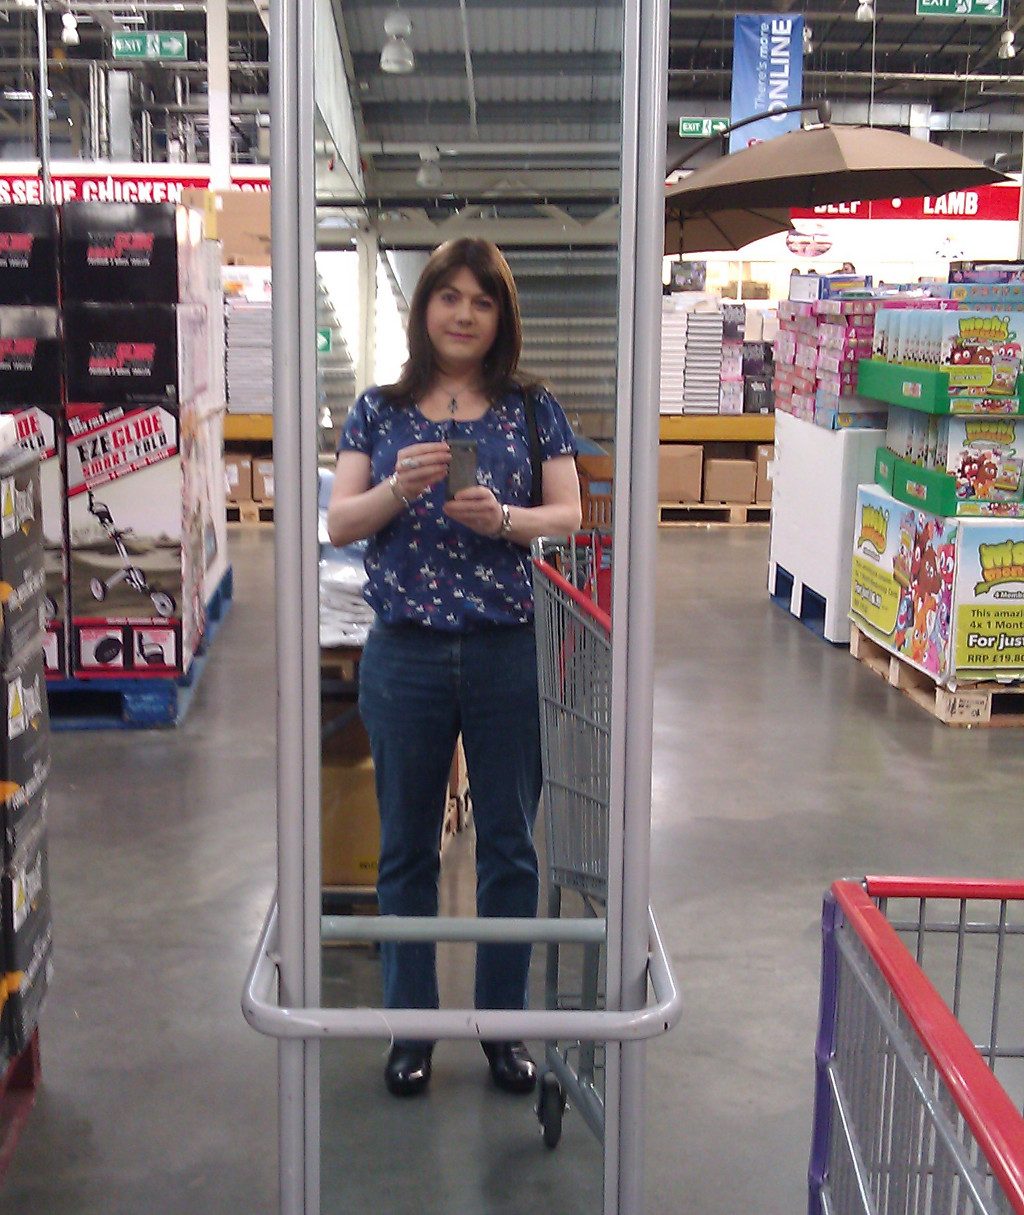 Me, in Costco.